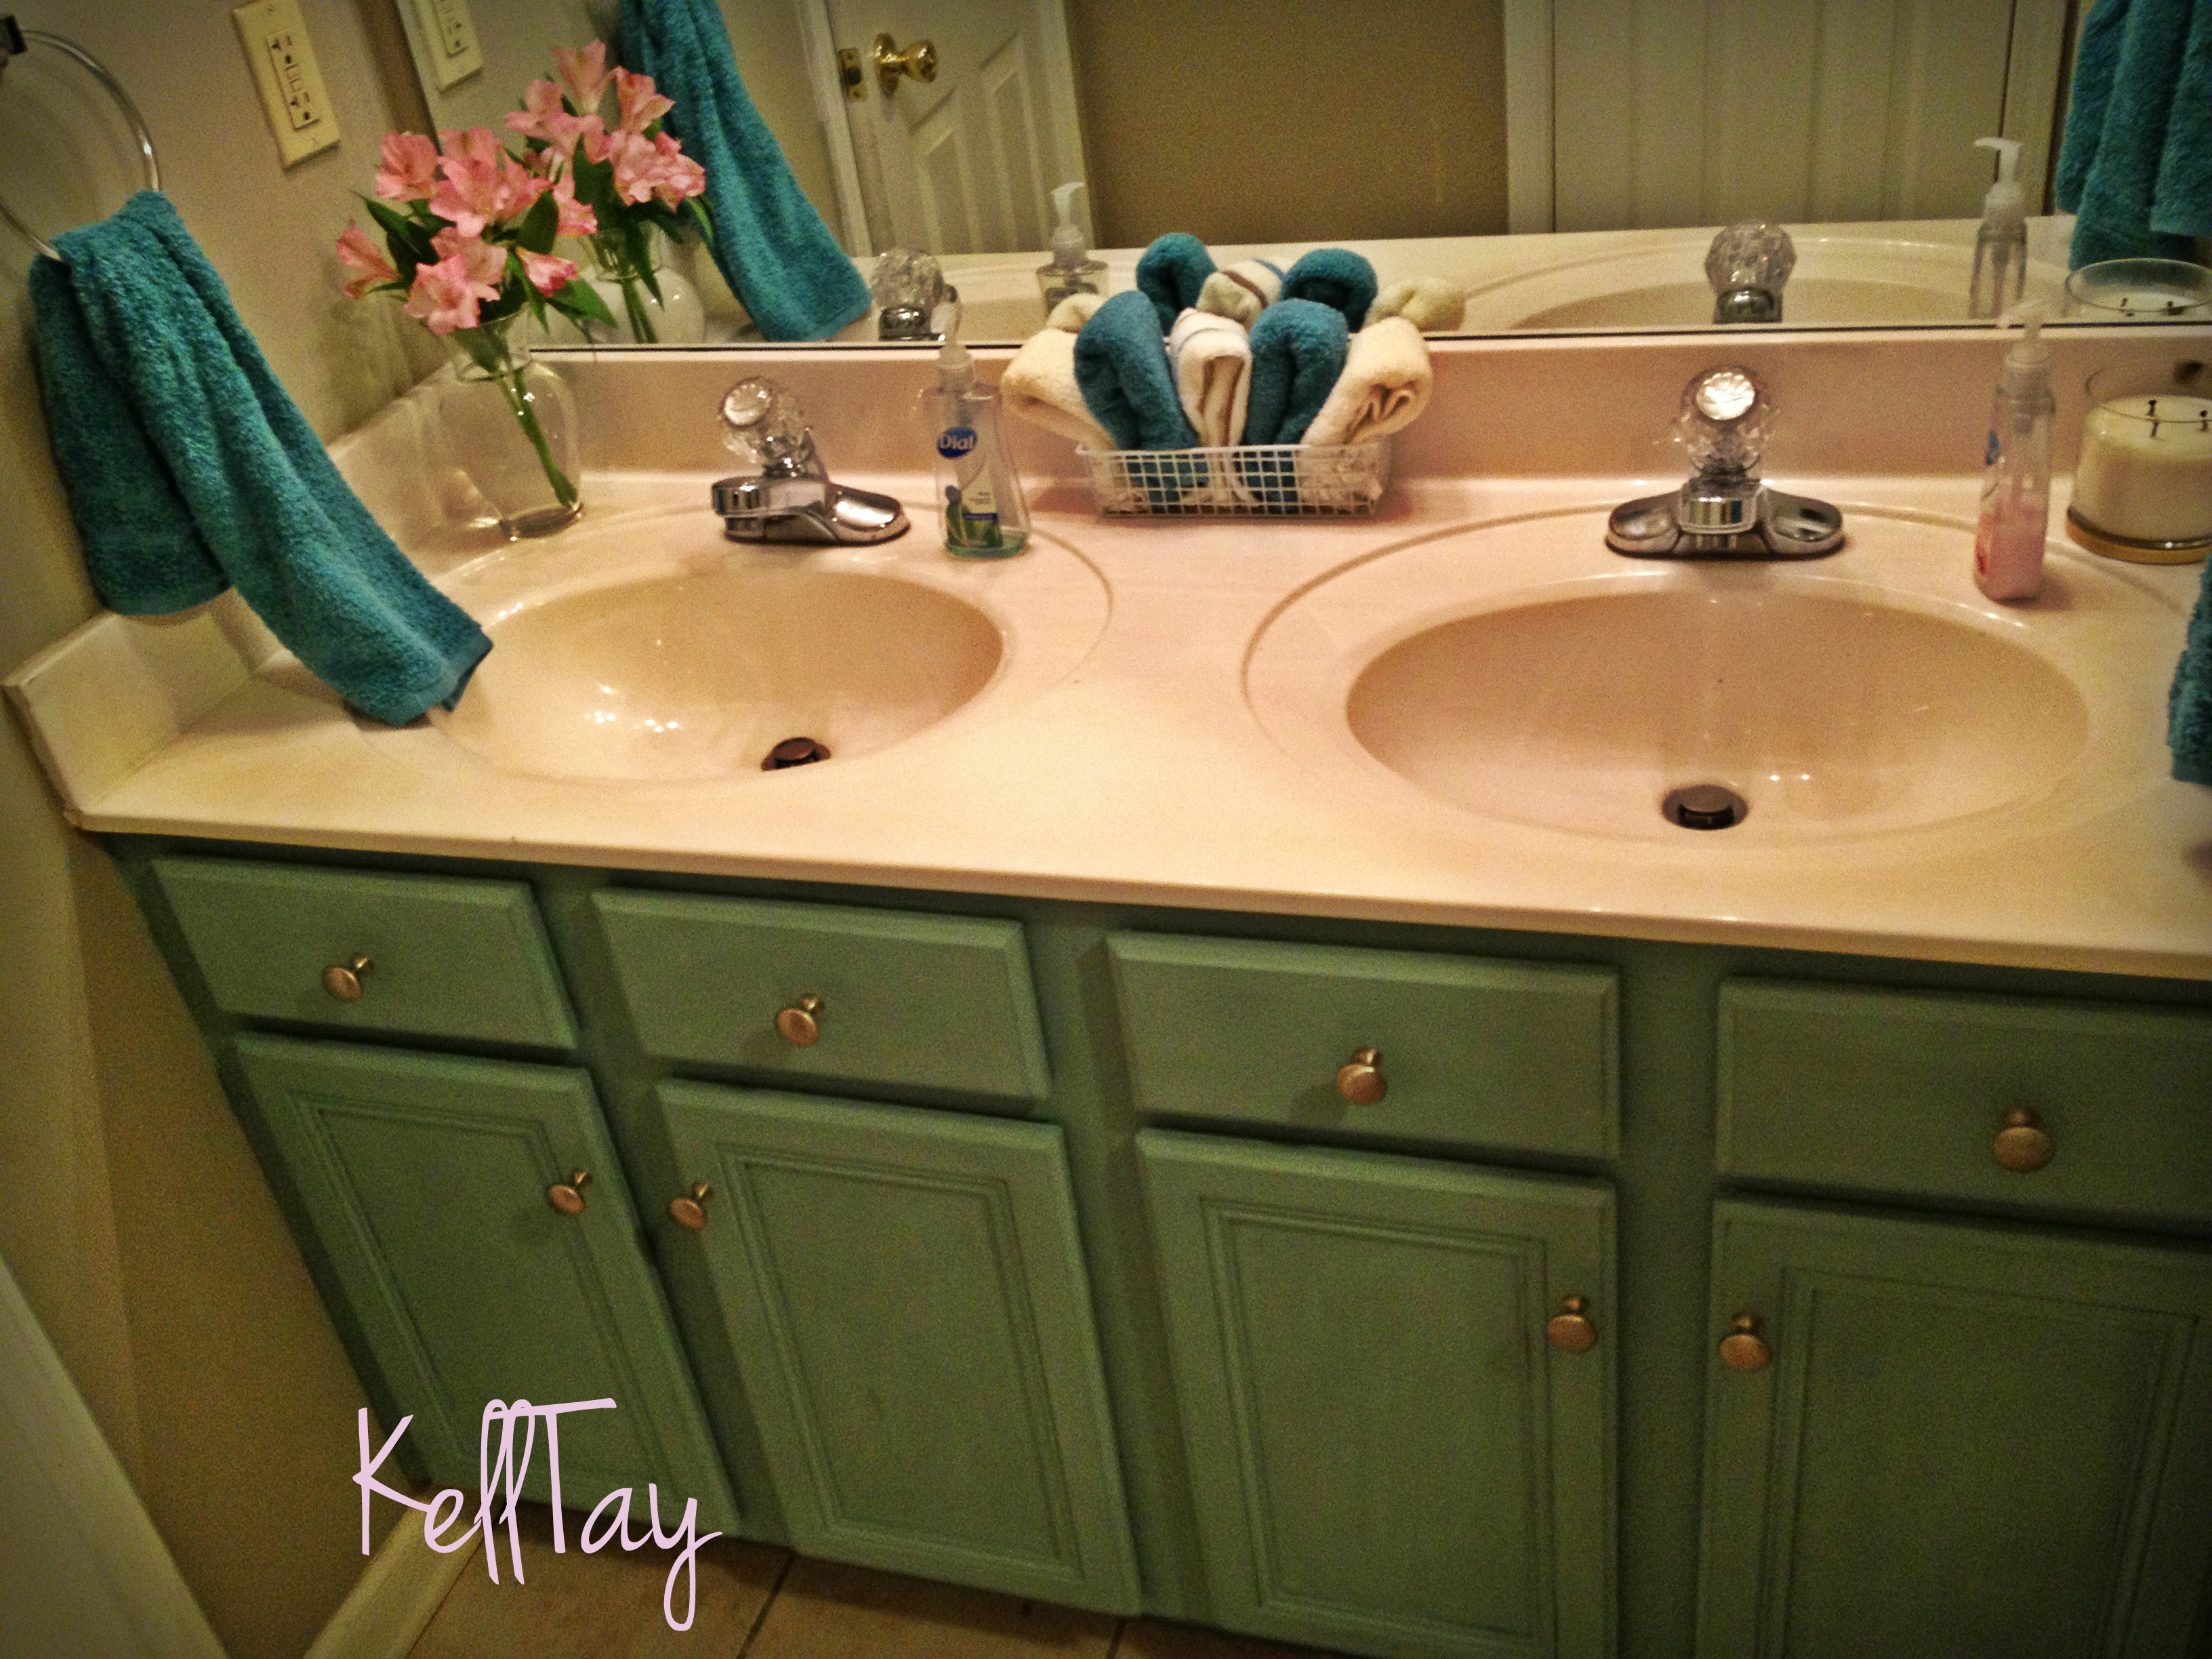 Bathroom Makeovers With Chalk Paint the best homemade chalk paint recipe i've ever written – kelltay